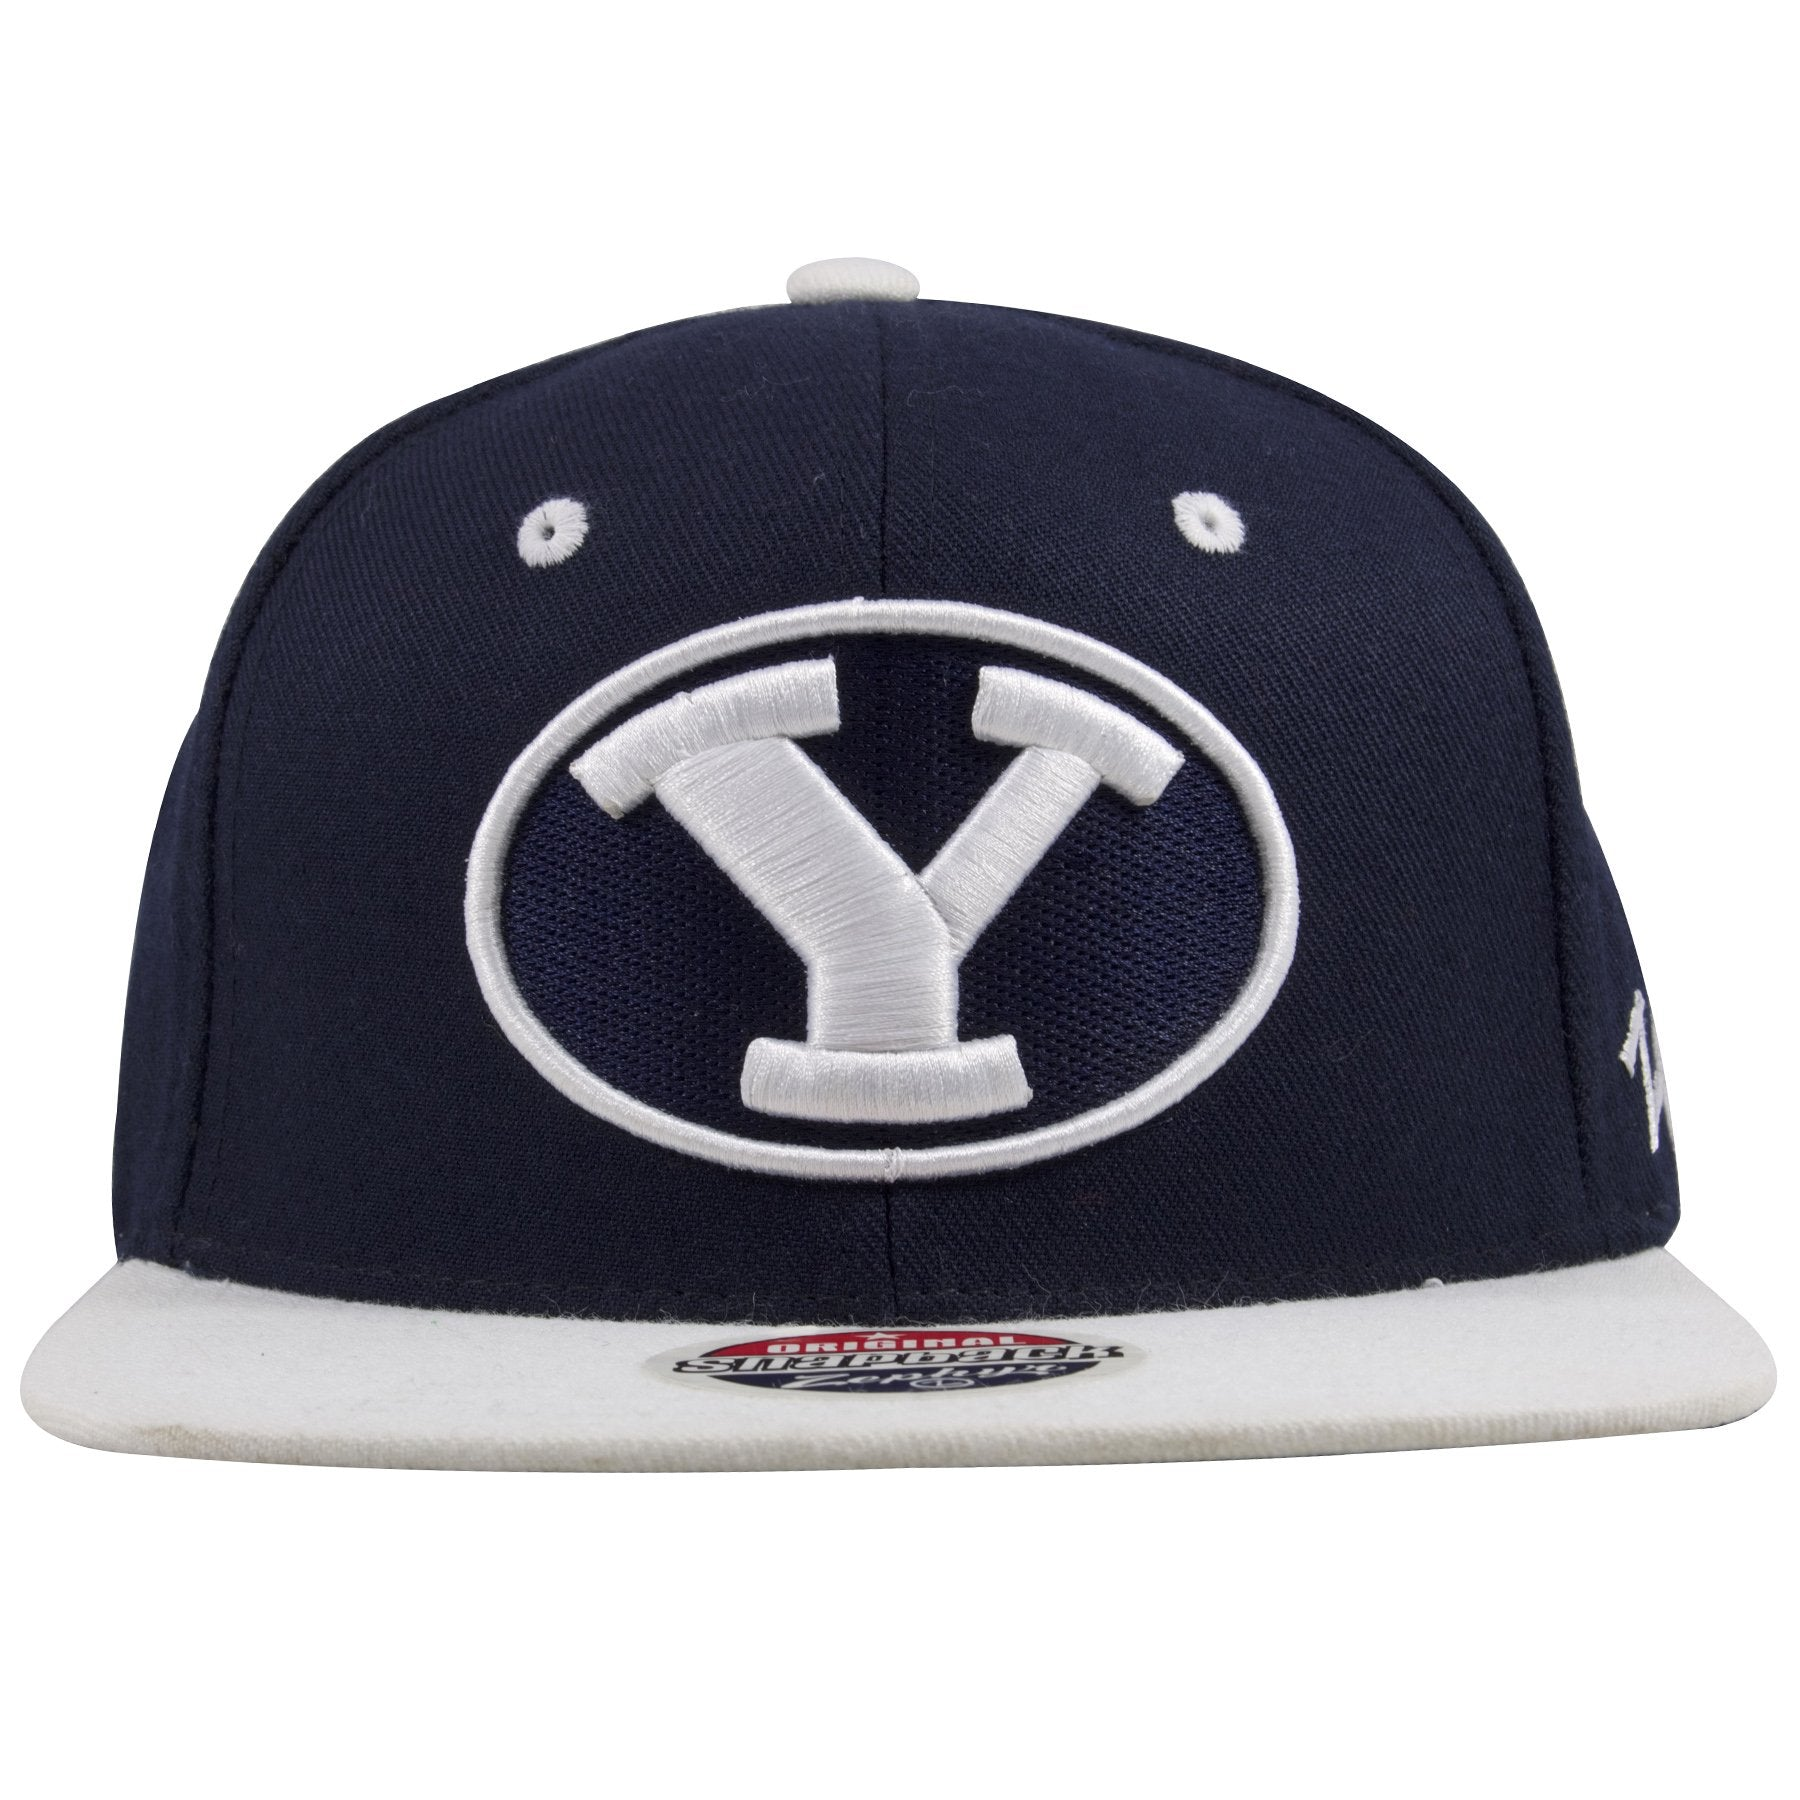 on the front of the byu cougars navy blue on white snapback hat is a byu 185b7a8199a